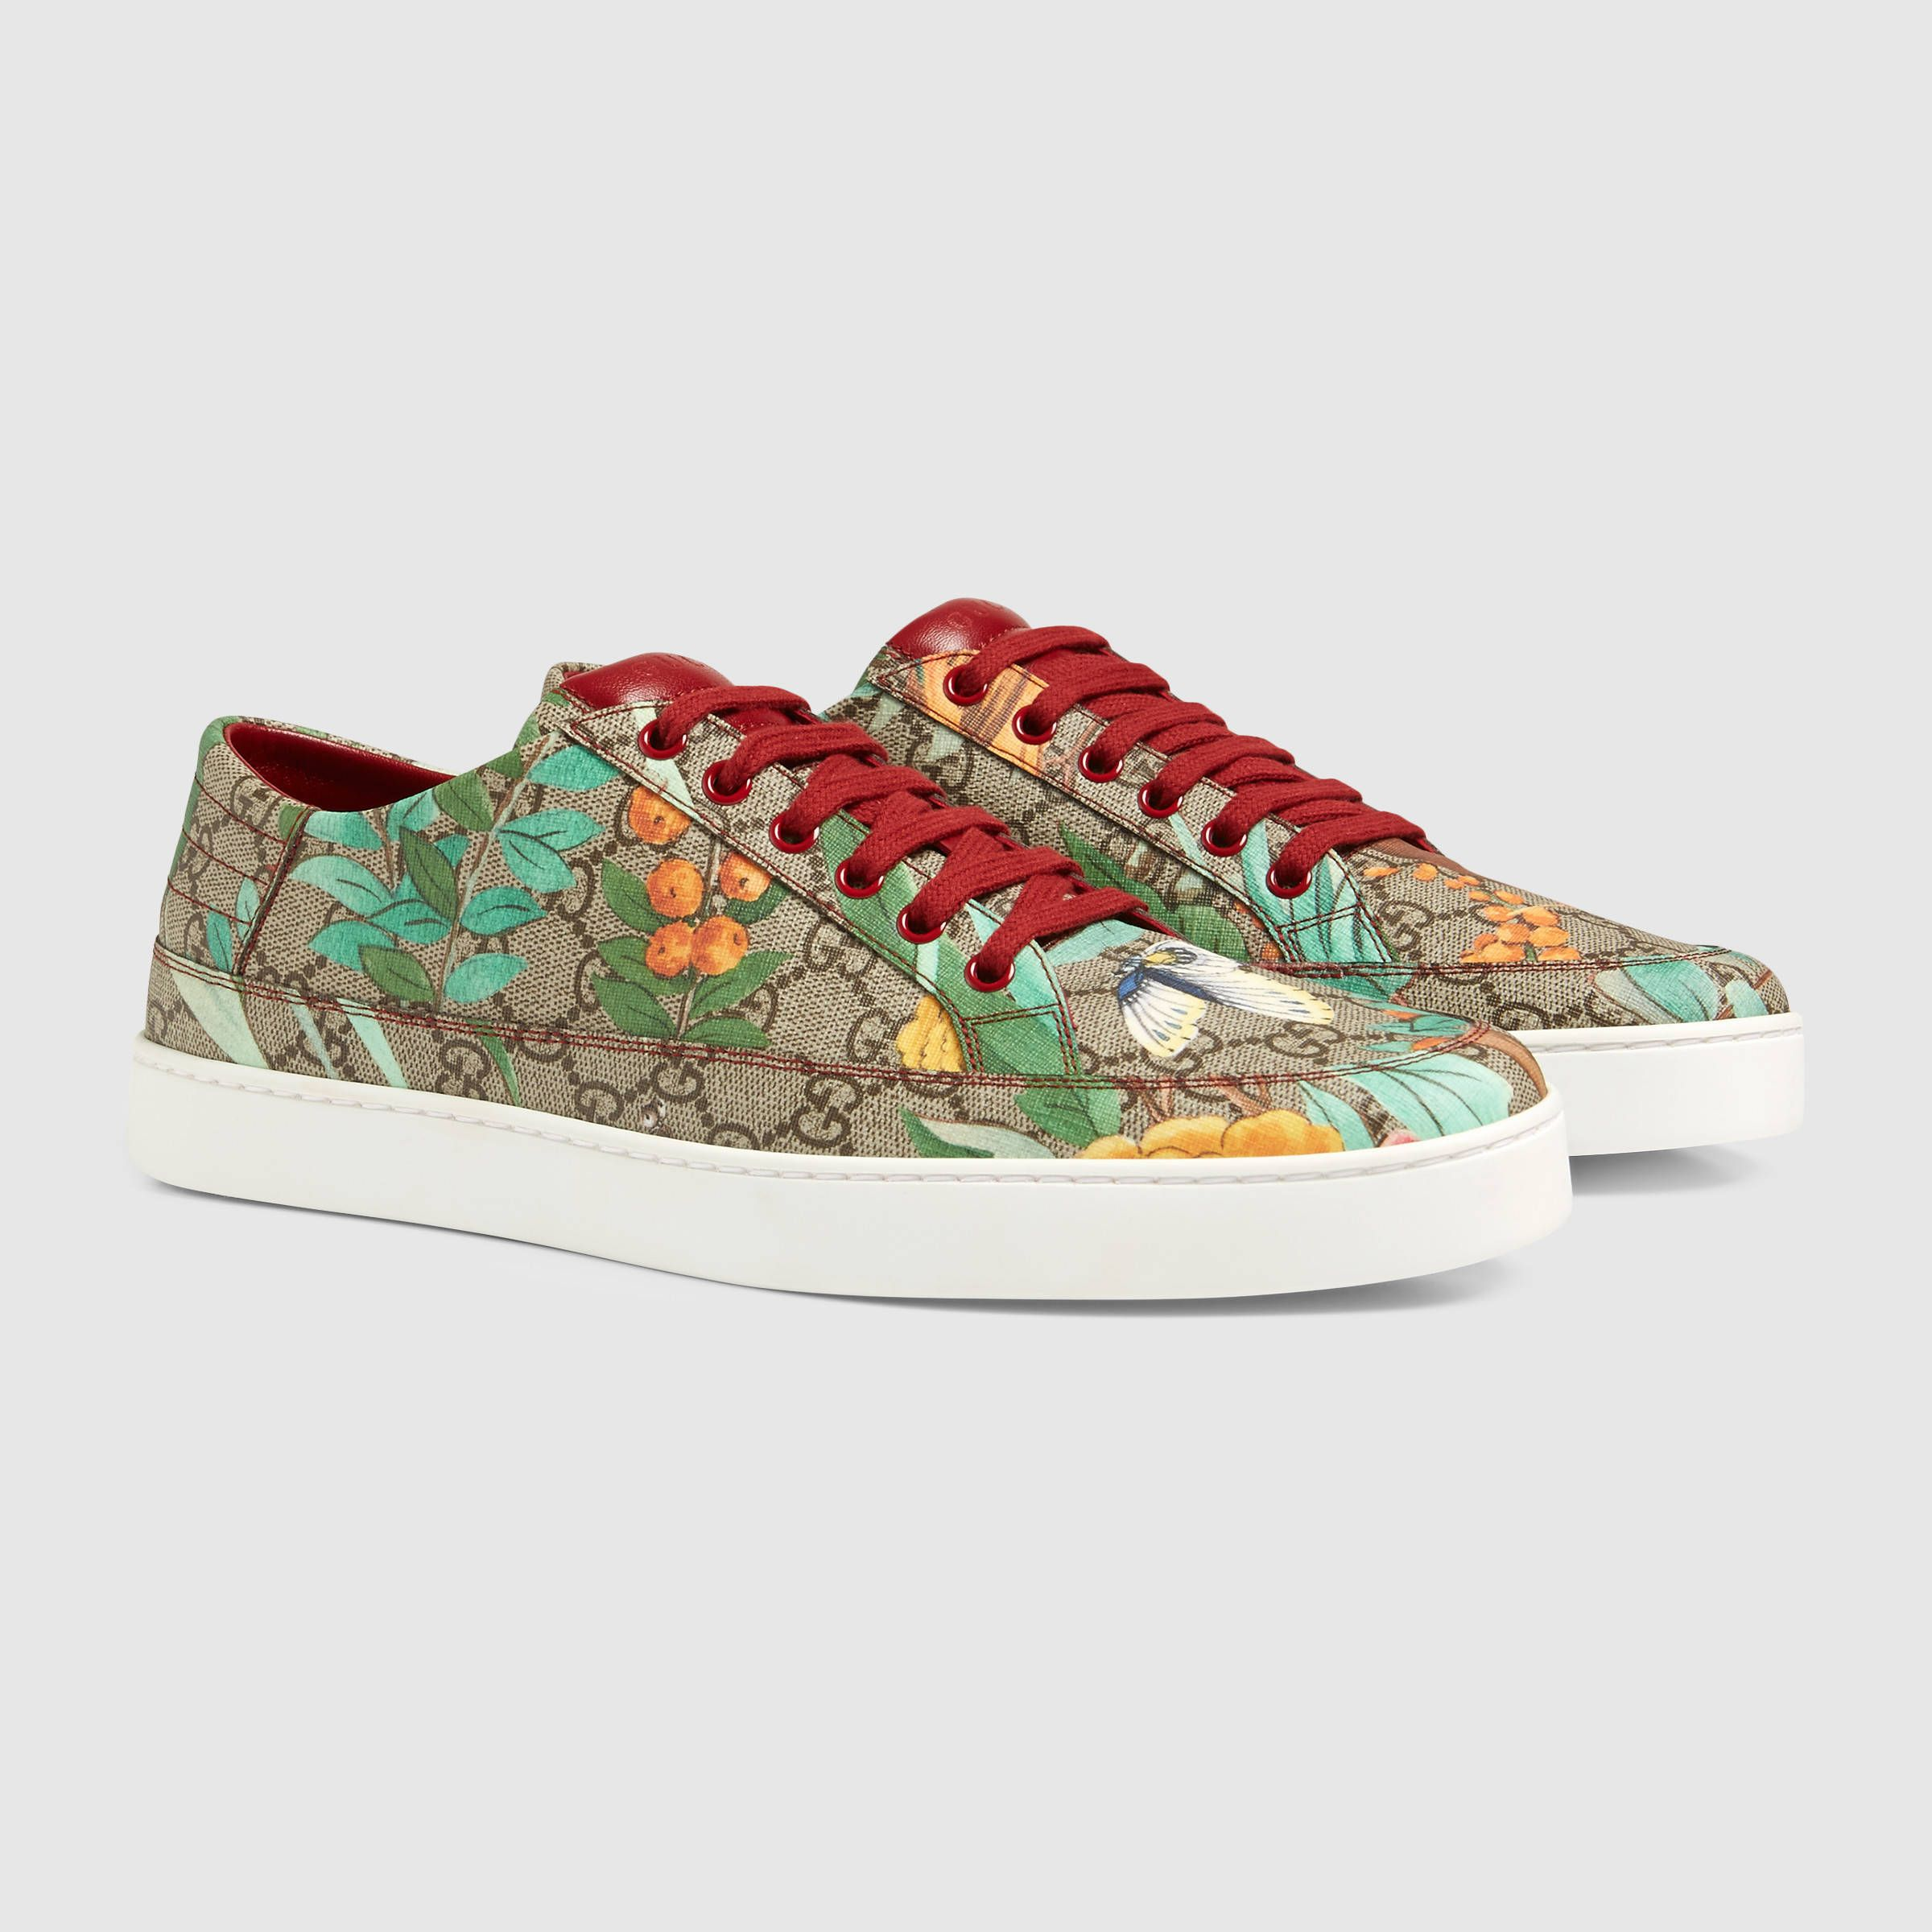 0eb07337c4d7a Men s Gucci Tian low-top sneaker